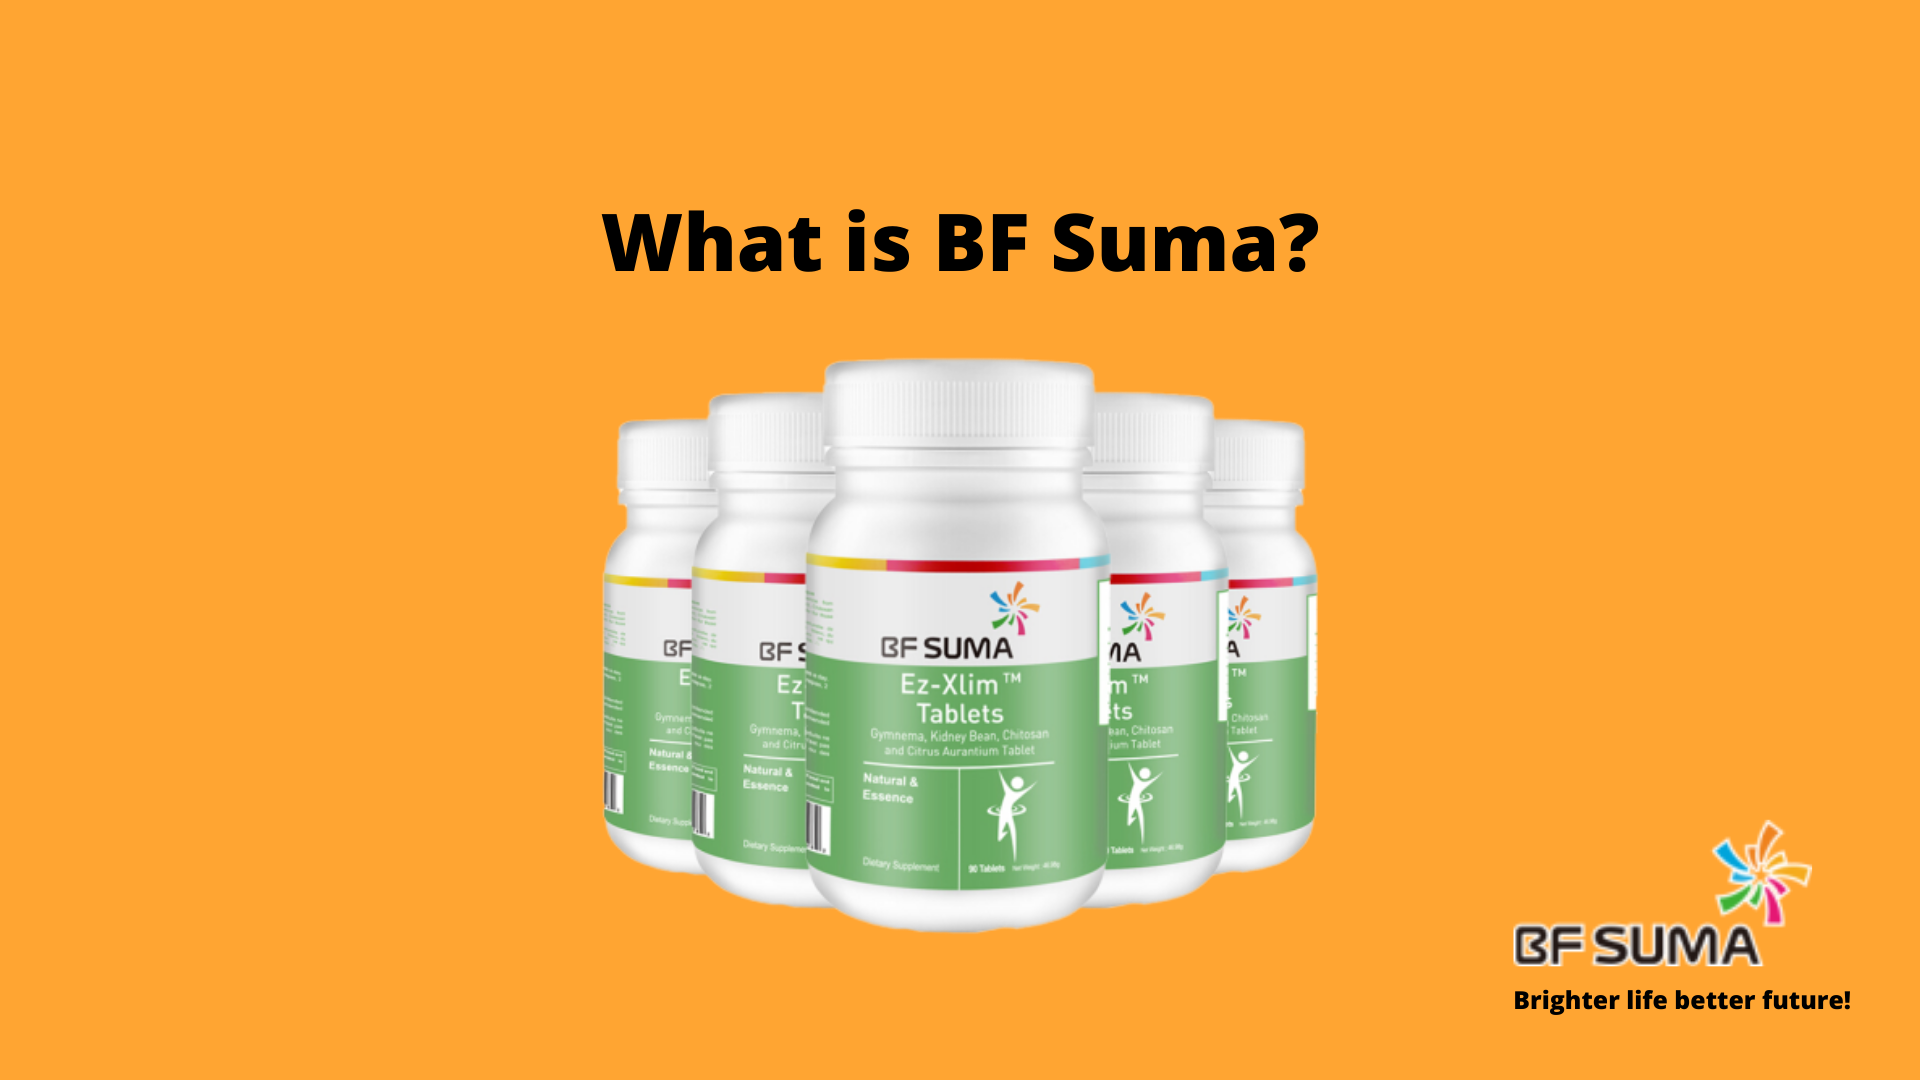 What is BF Suma?